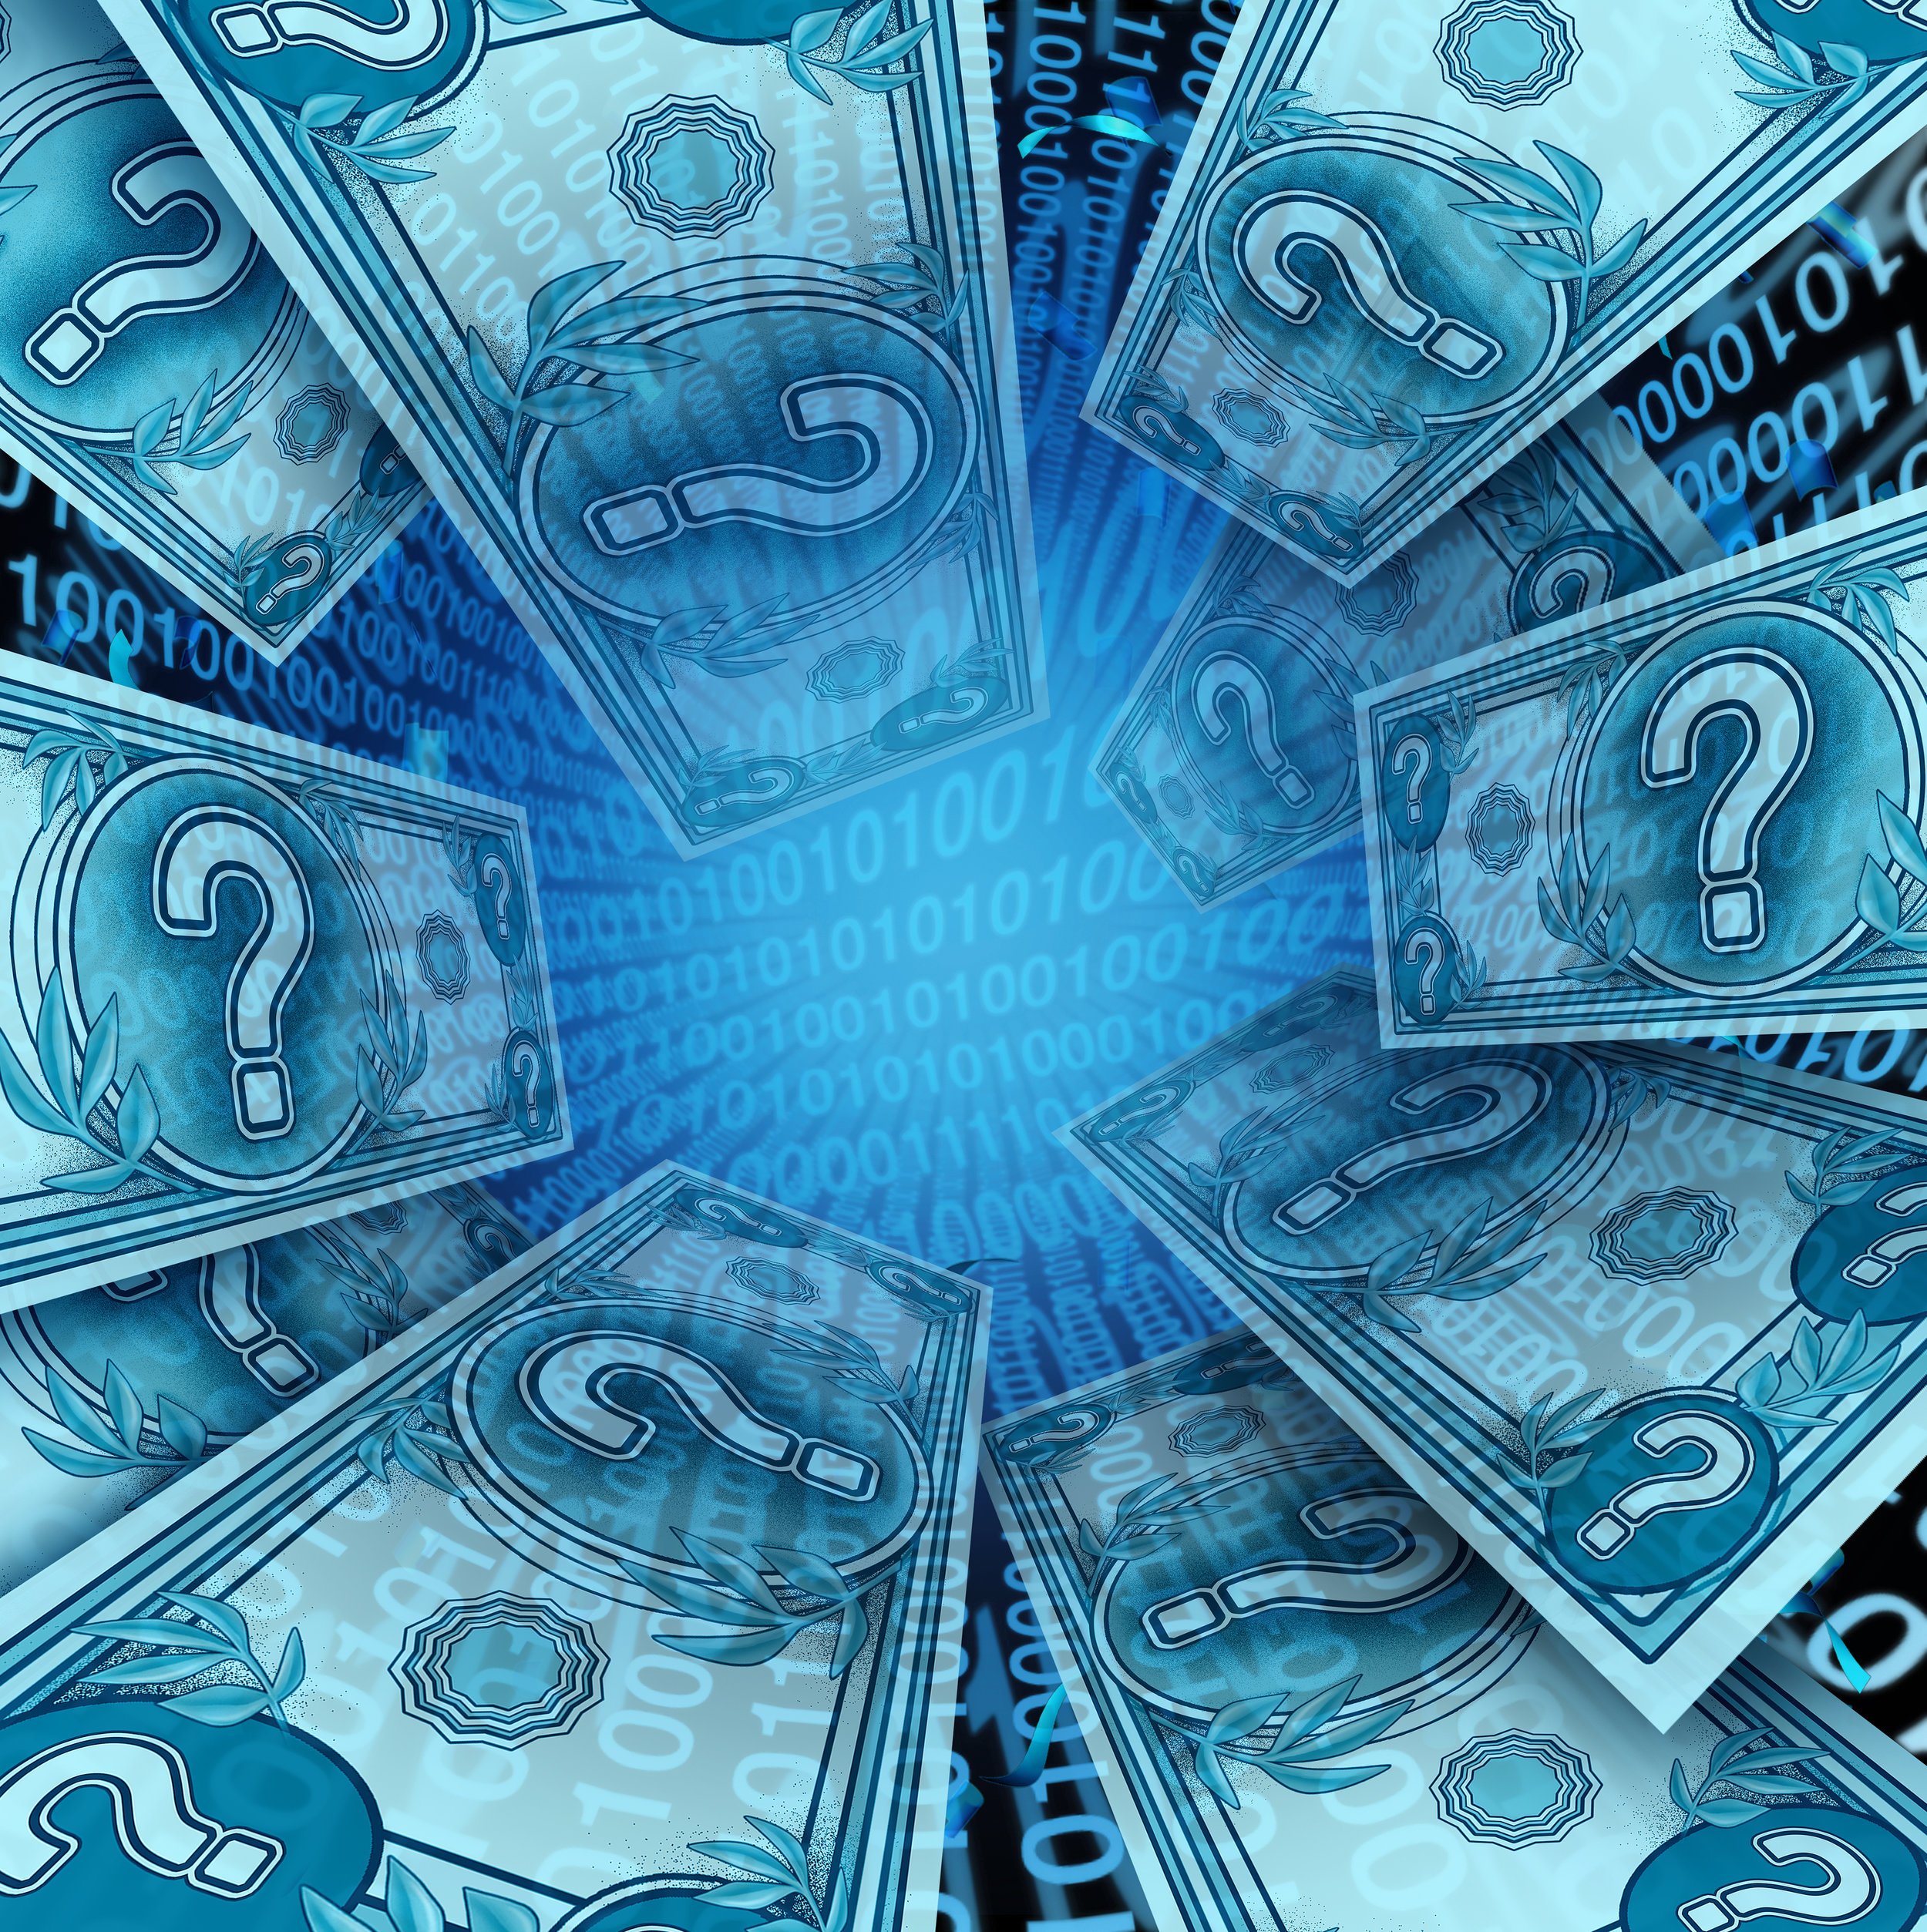 when will the US dollar become virtualized?  (Getty Images license)